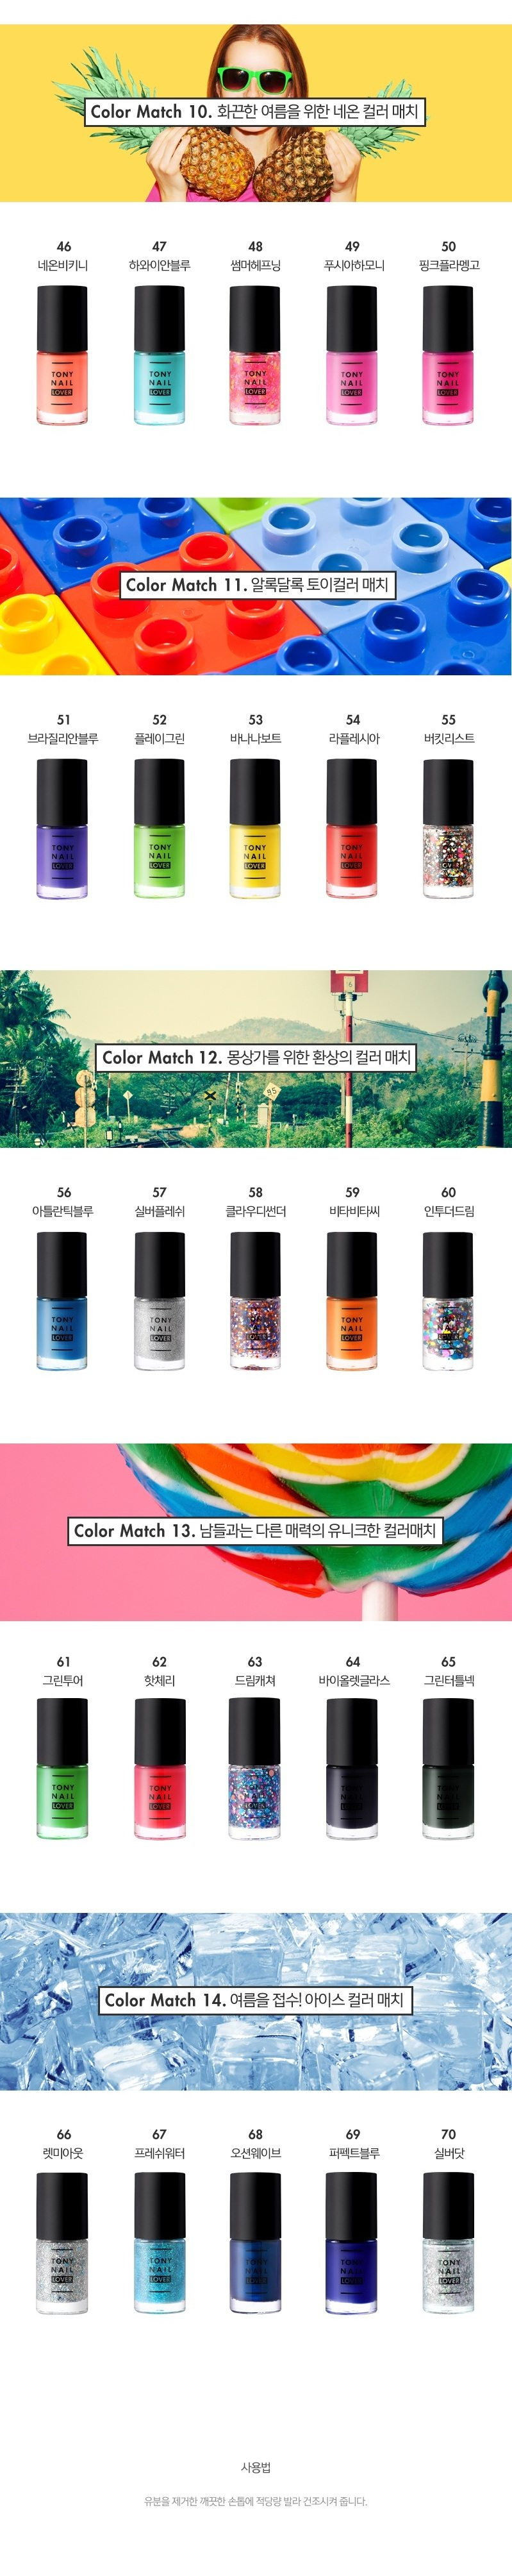 Tony Moly Tony Nail Lover korean cosmetic makeup product online shop malaysia spain portugal3